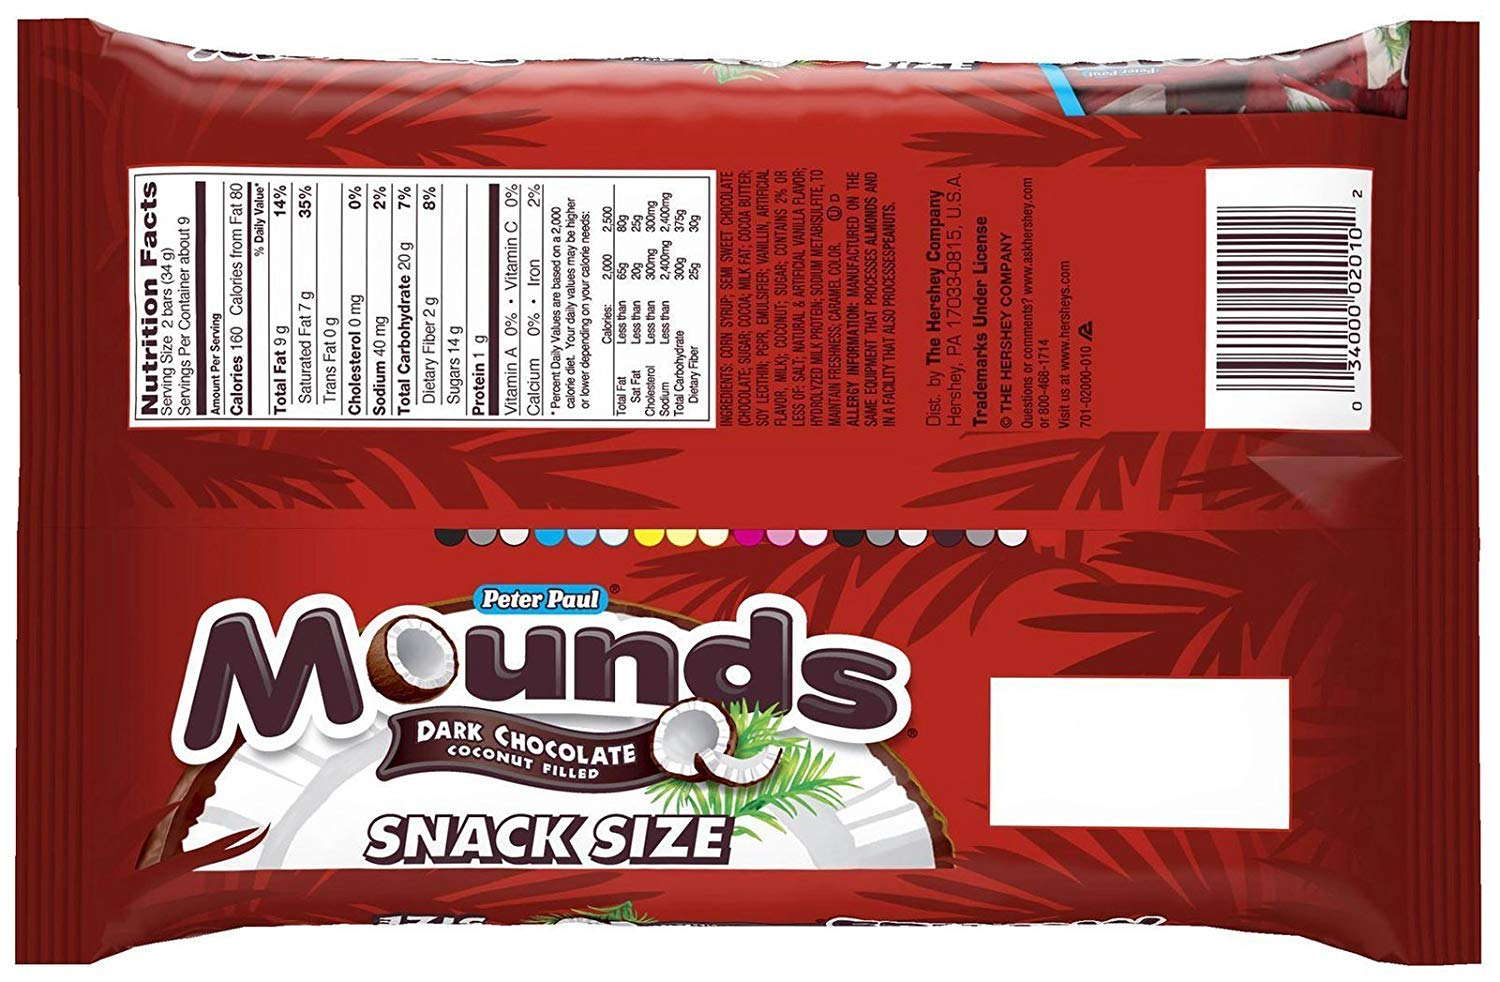 Mounds Snack Size Bars - 11.3 oz - 3 pk